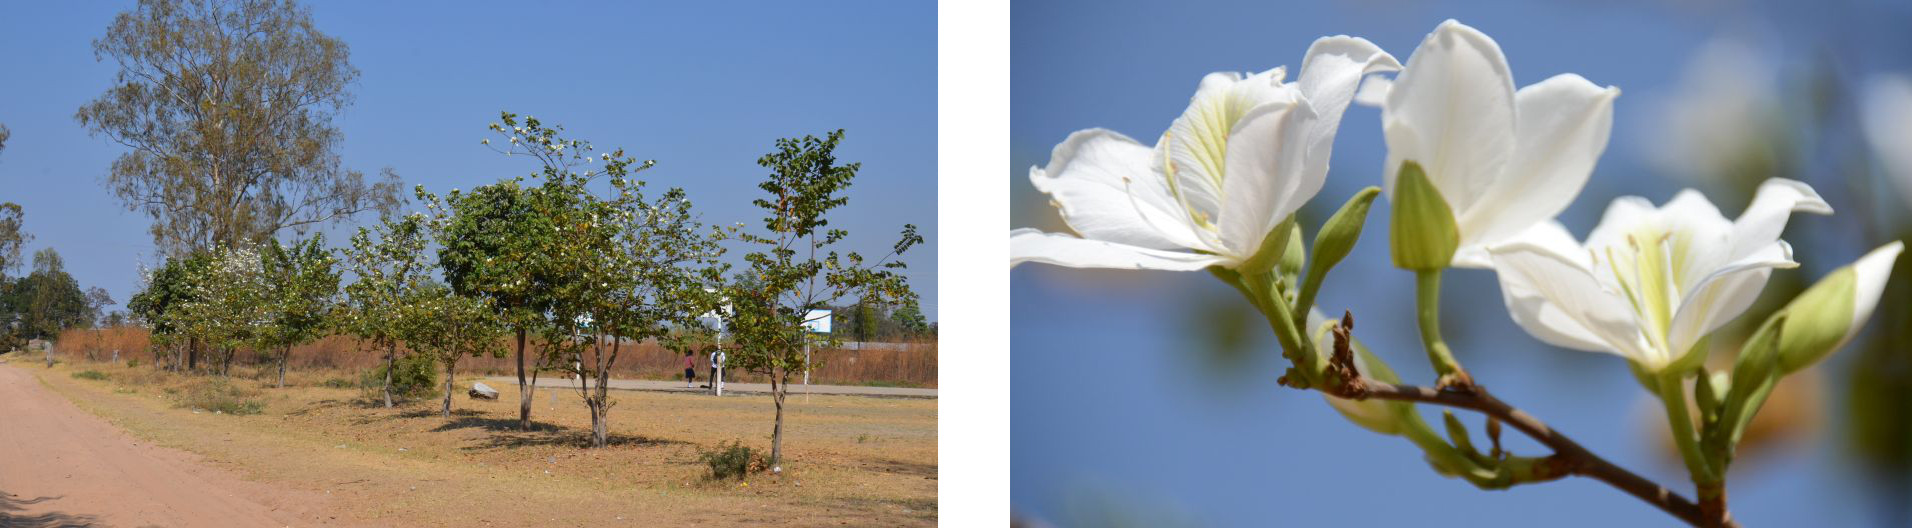 August 2015: The trees which we planted in 2006 are blossoming in August